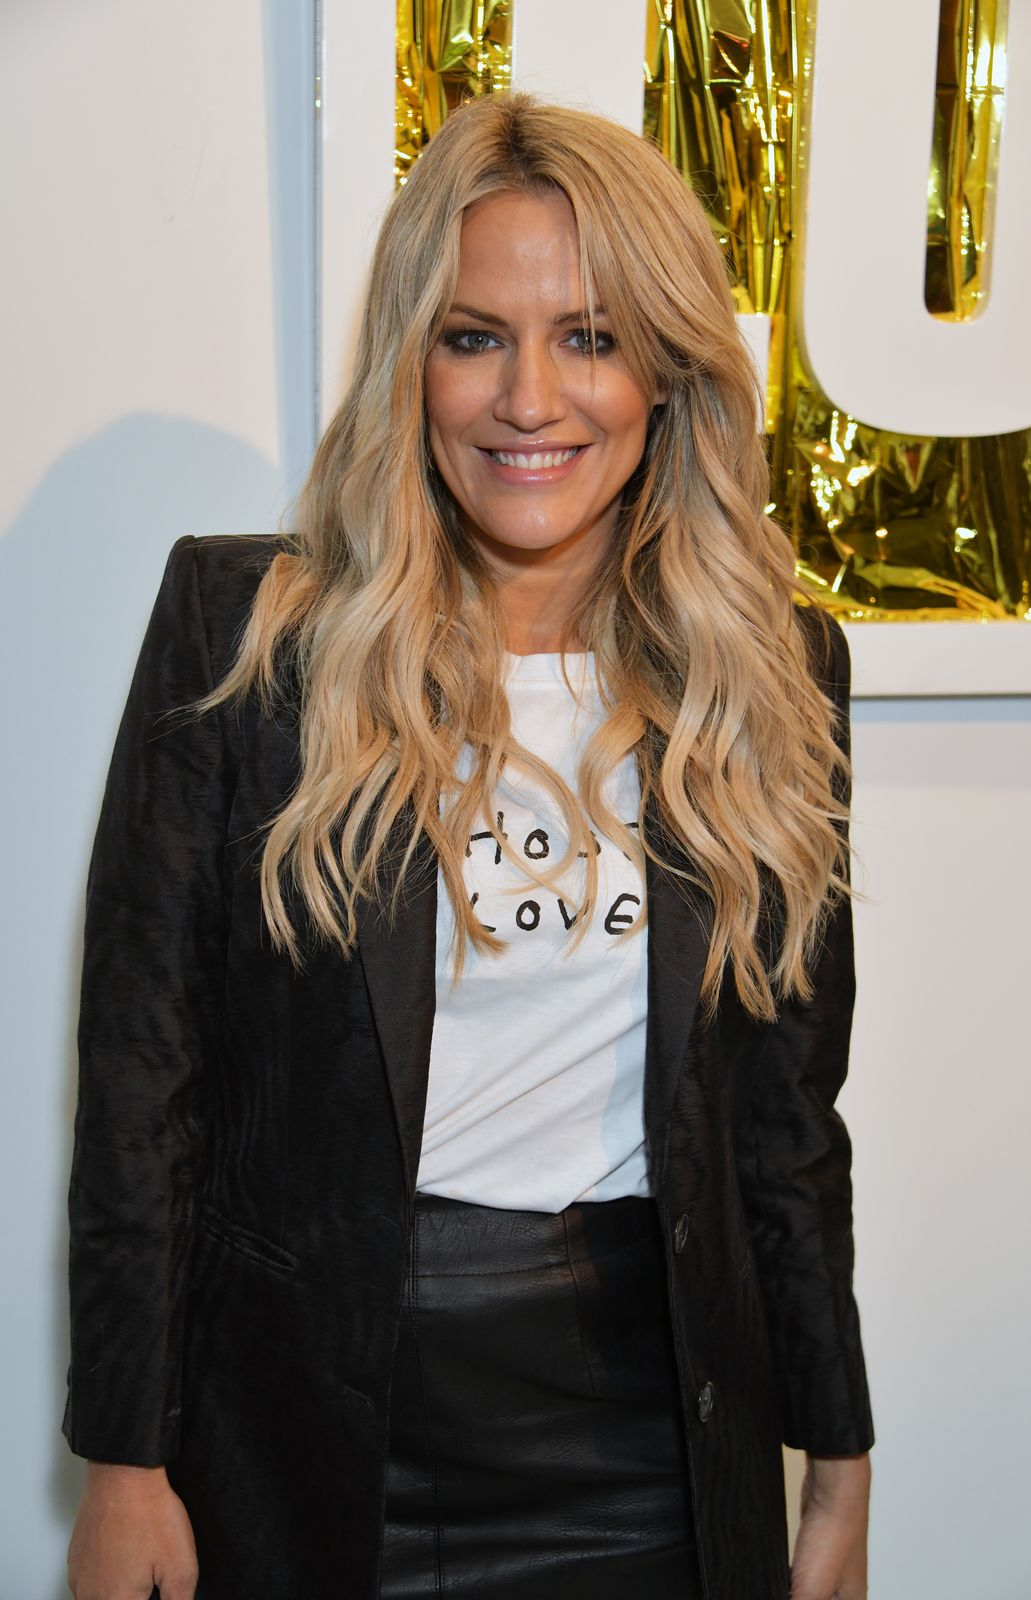 Caroline Flack attends the launch of the Choose Love LFW Collection during London Fashion Week at The Store X on September 13, 2019 in London, England. | Photo: Getty Images